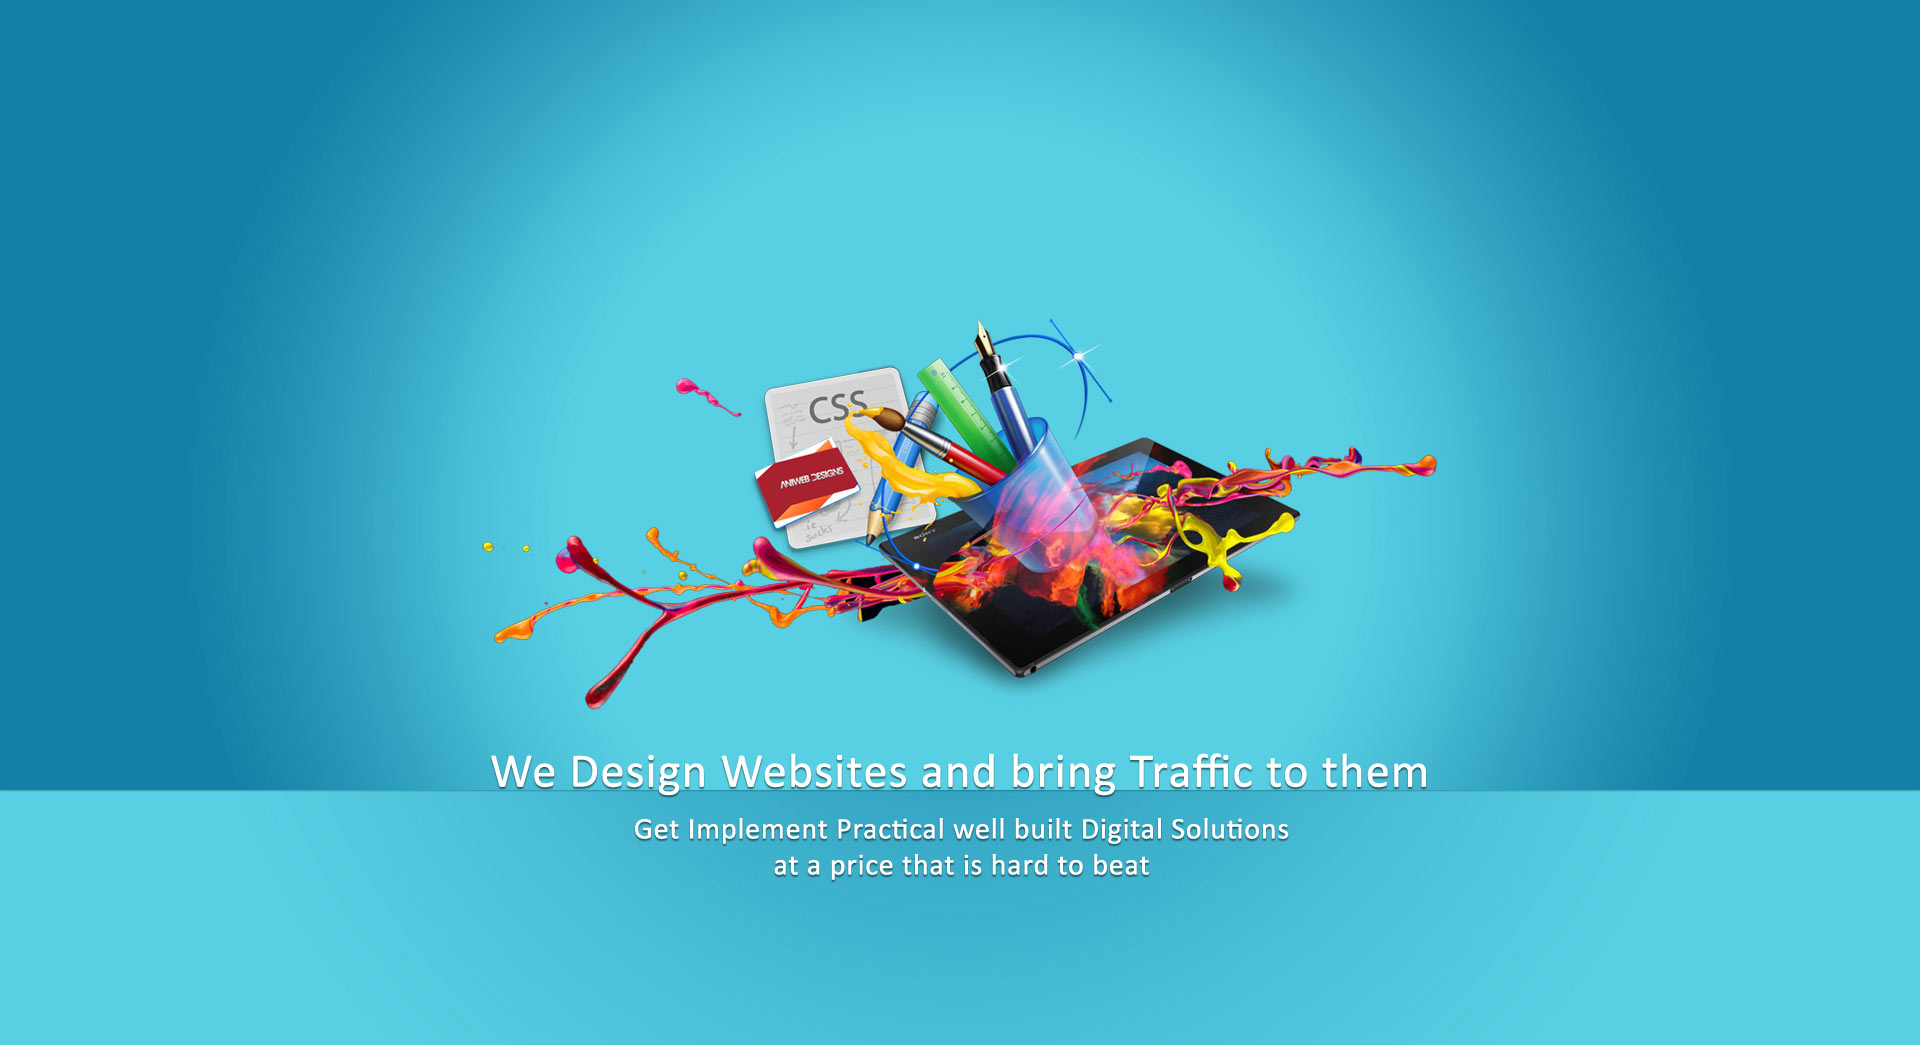 Design Websites